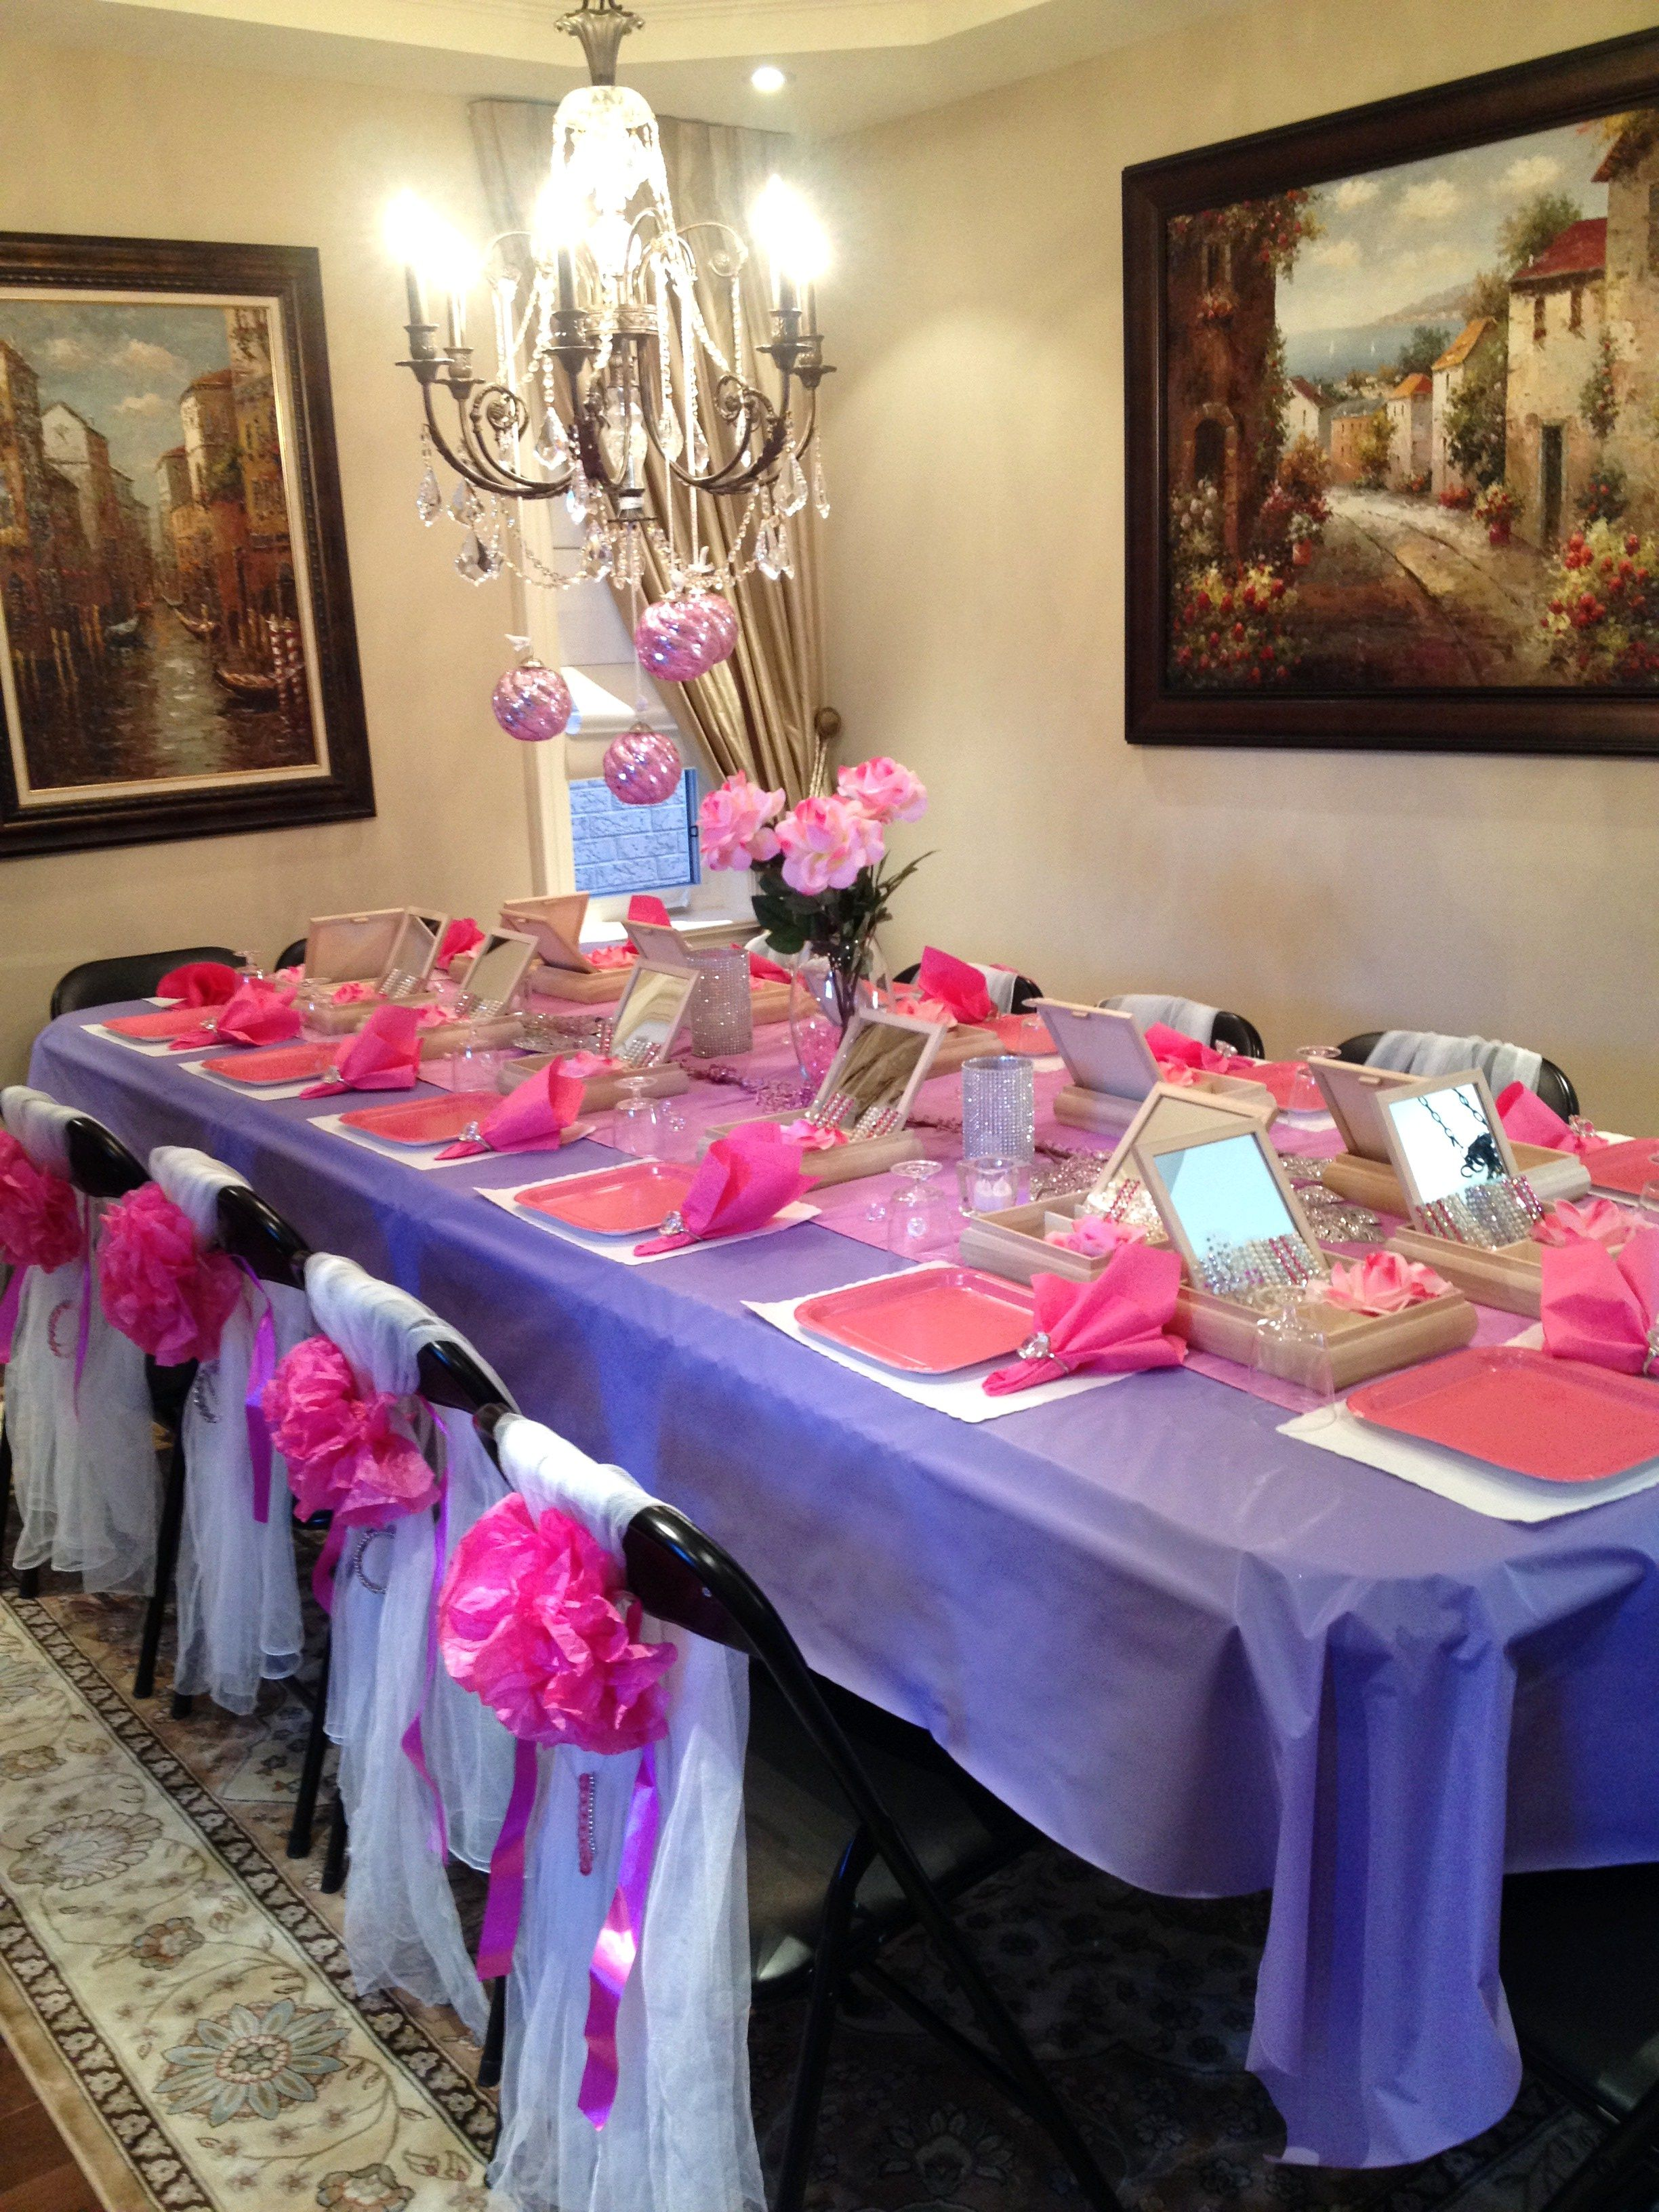 3 year old birthday party themes girl ; 4a631d09ce7564d9a88c0db374b3e382